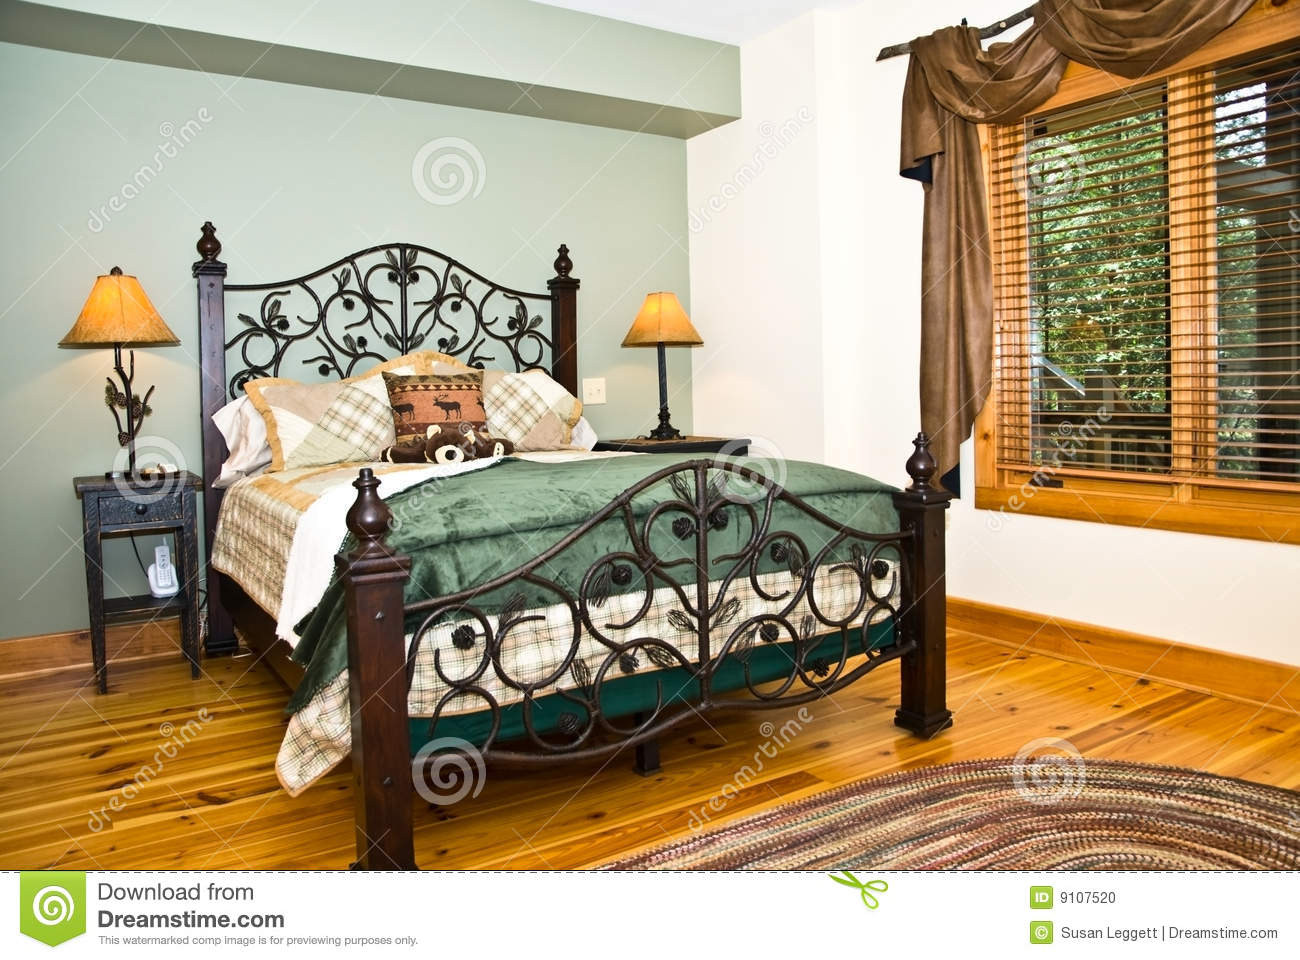 Modern BedroomRustic Decor Stock Photo Image 9107520